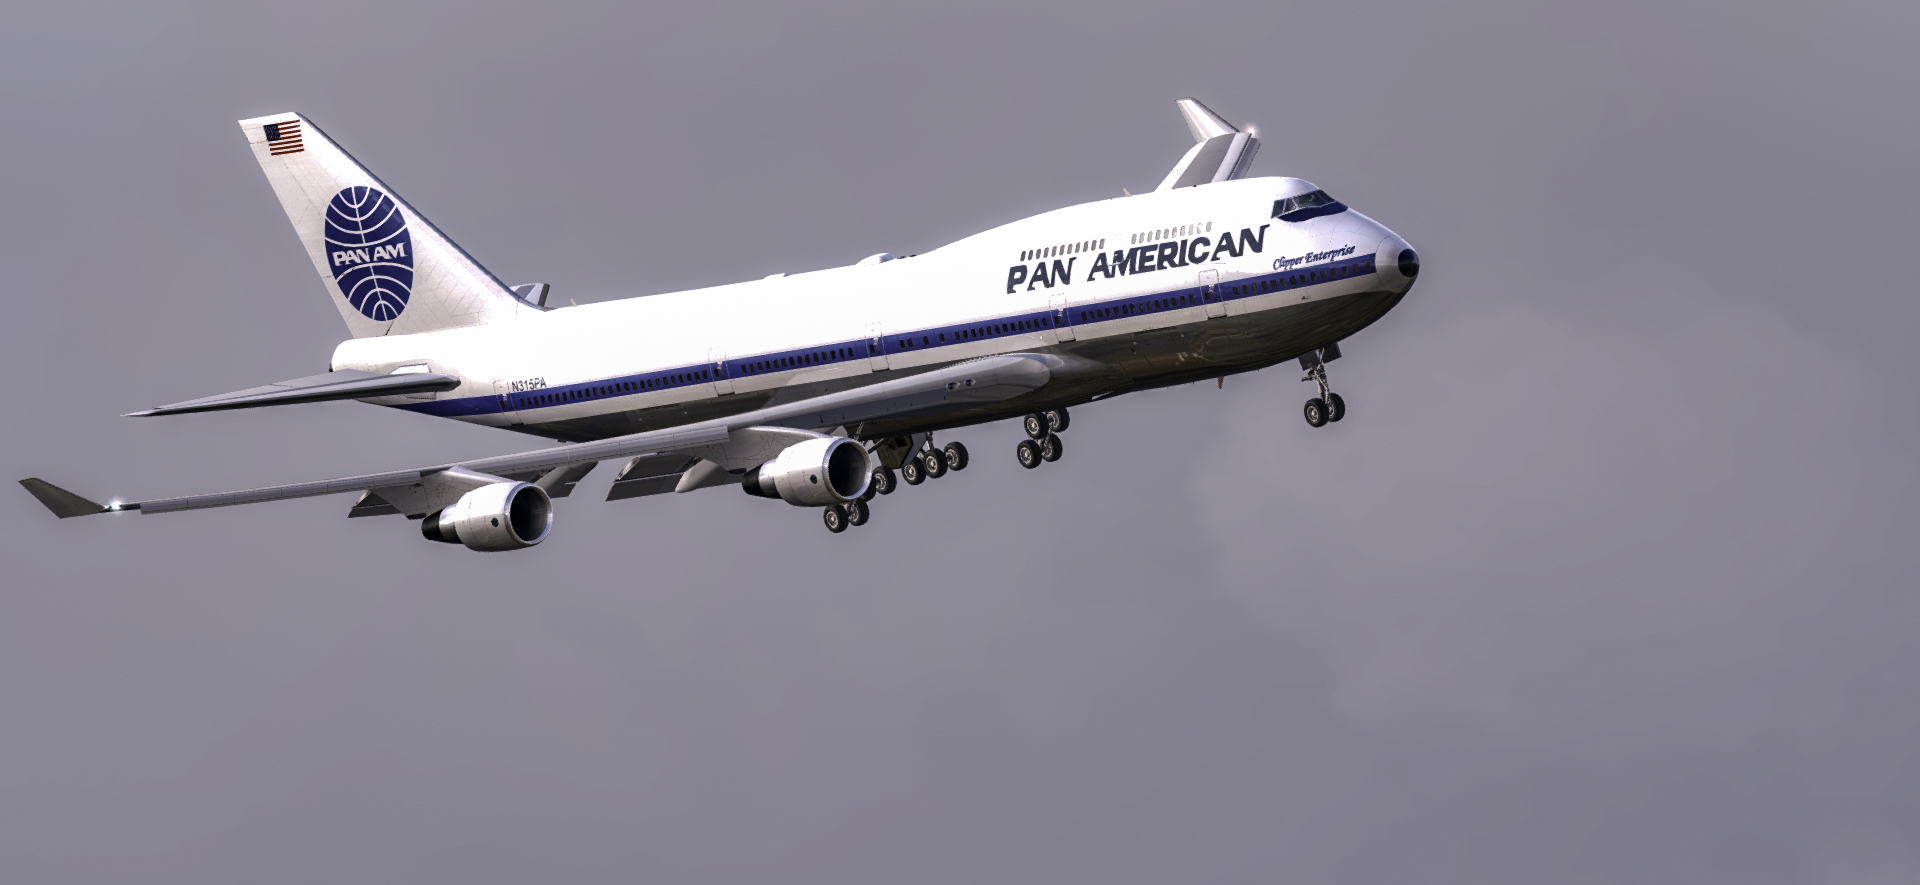 Going Retro w/ Pan Am 4, 1920x885 (456,251 bytes)